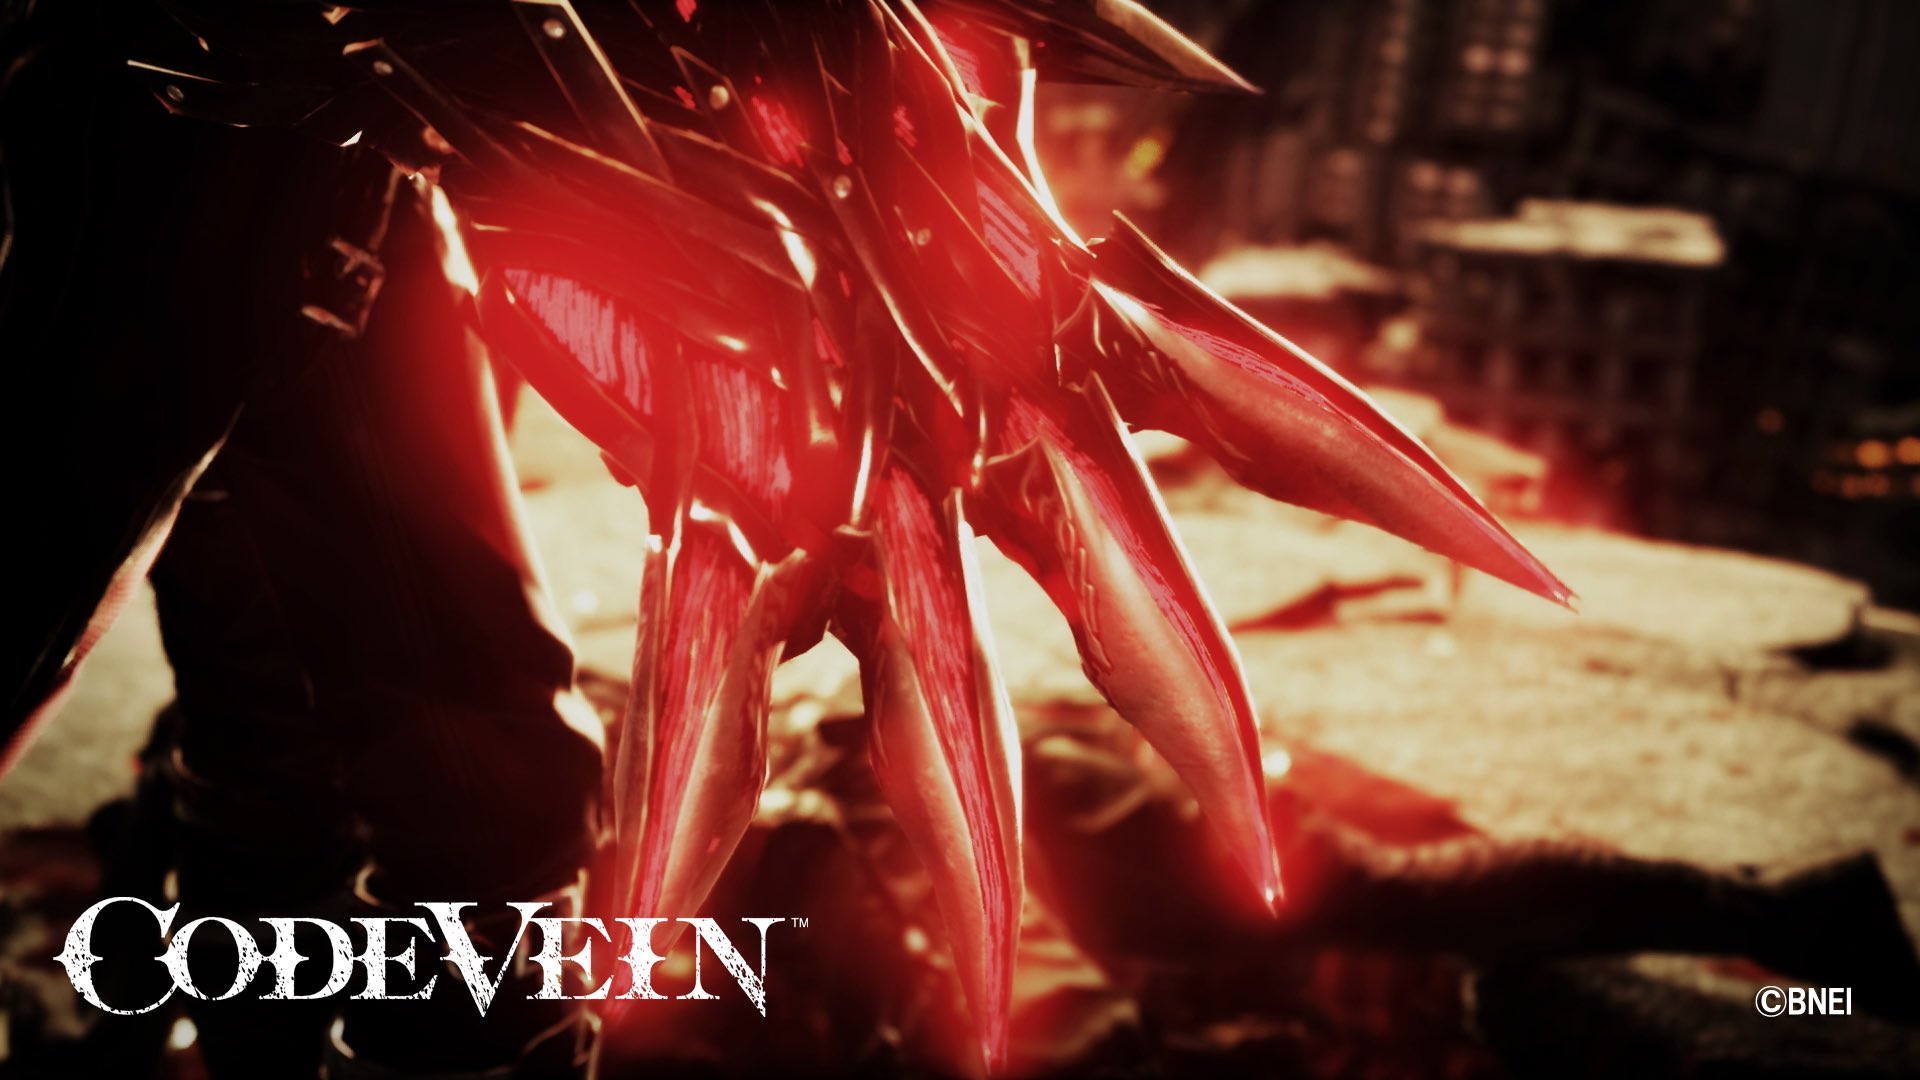 Code Vein debut trailer to be released May [Update